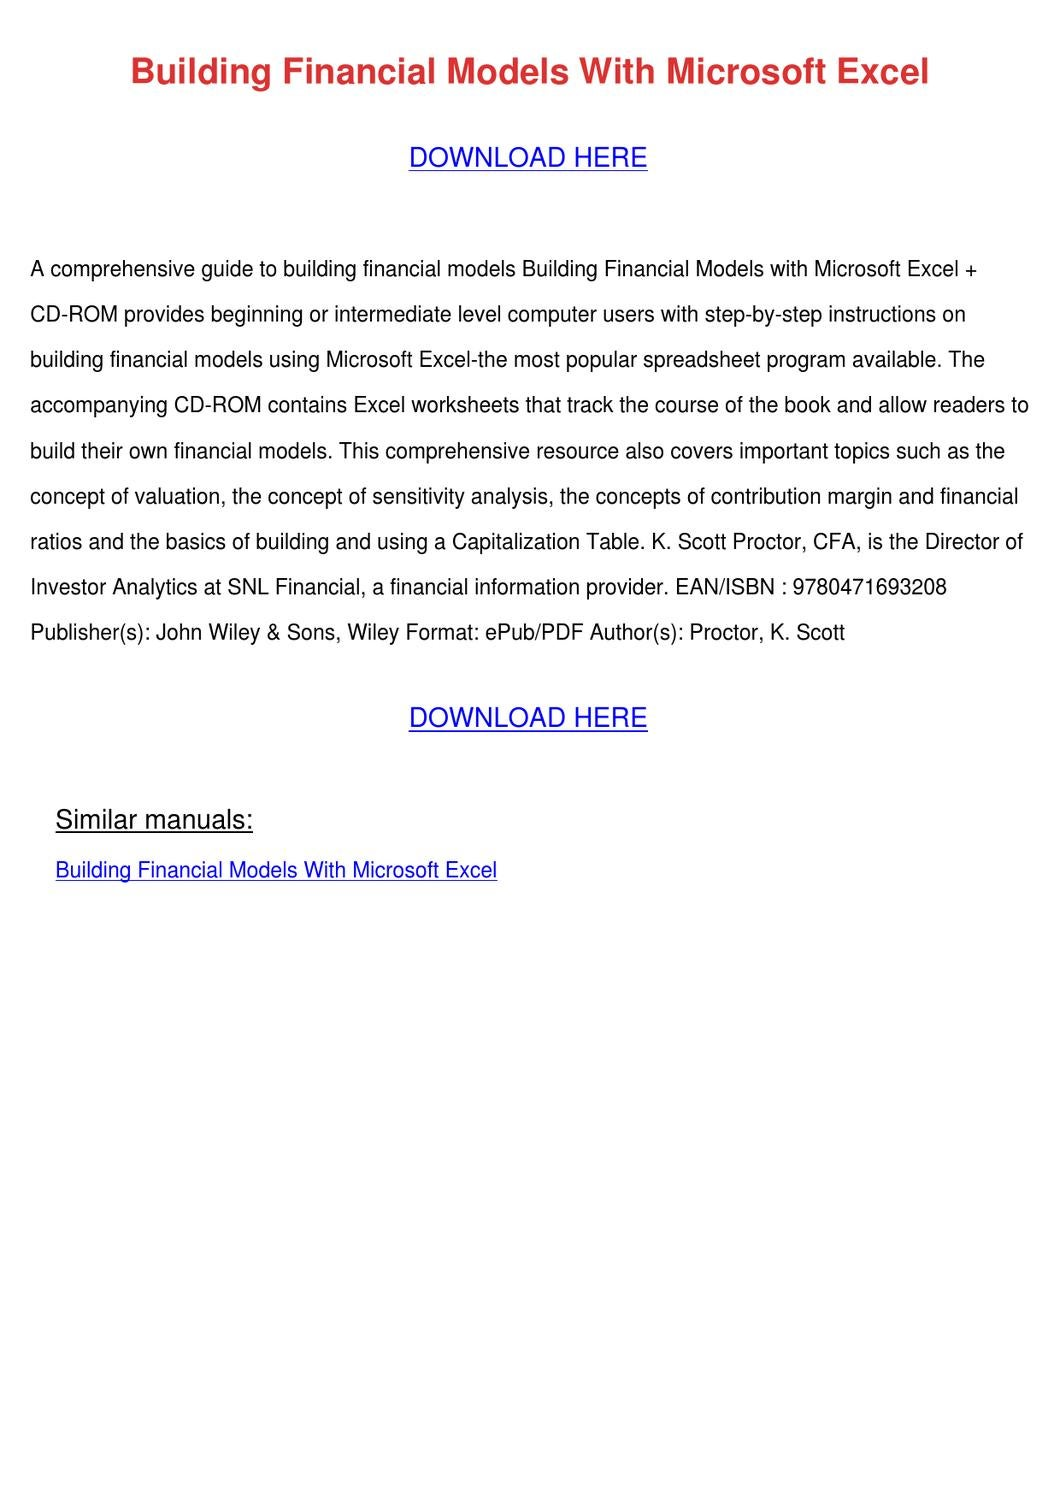 building financial models with microsoft exce by